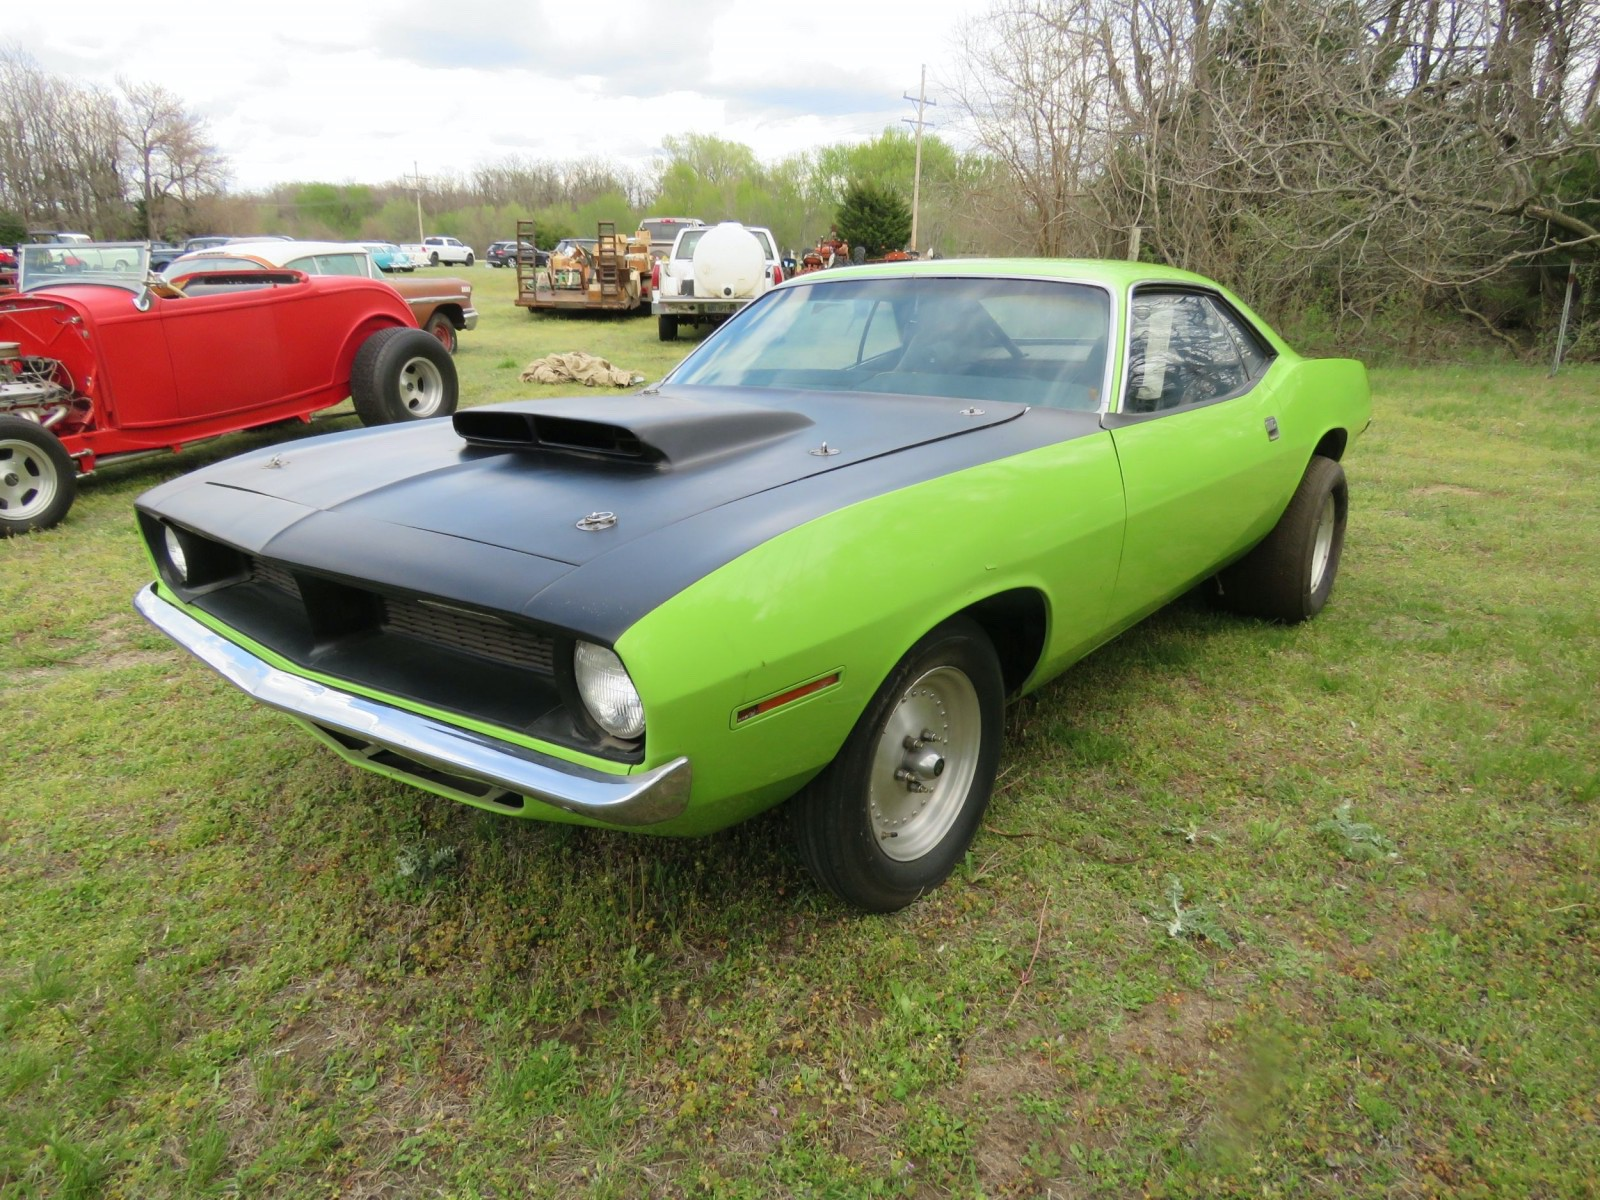 bob-regehr-collection-1970-plymouth-cuda-2